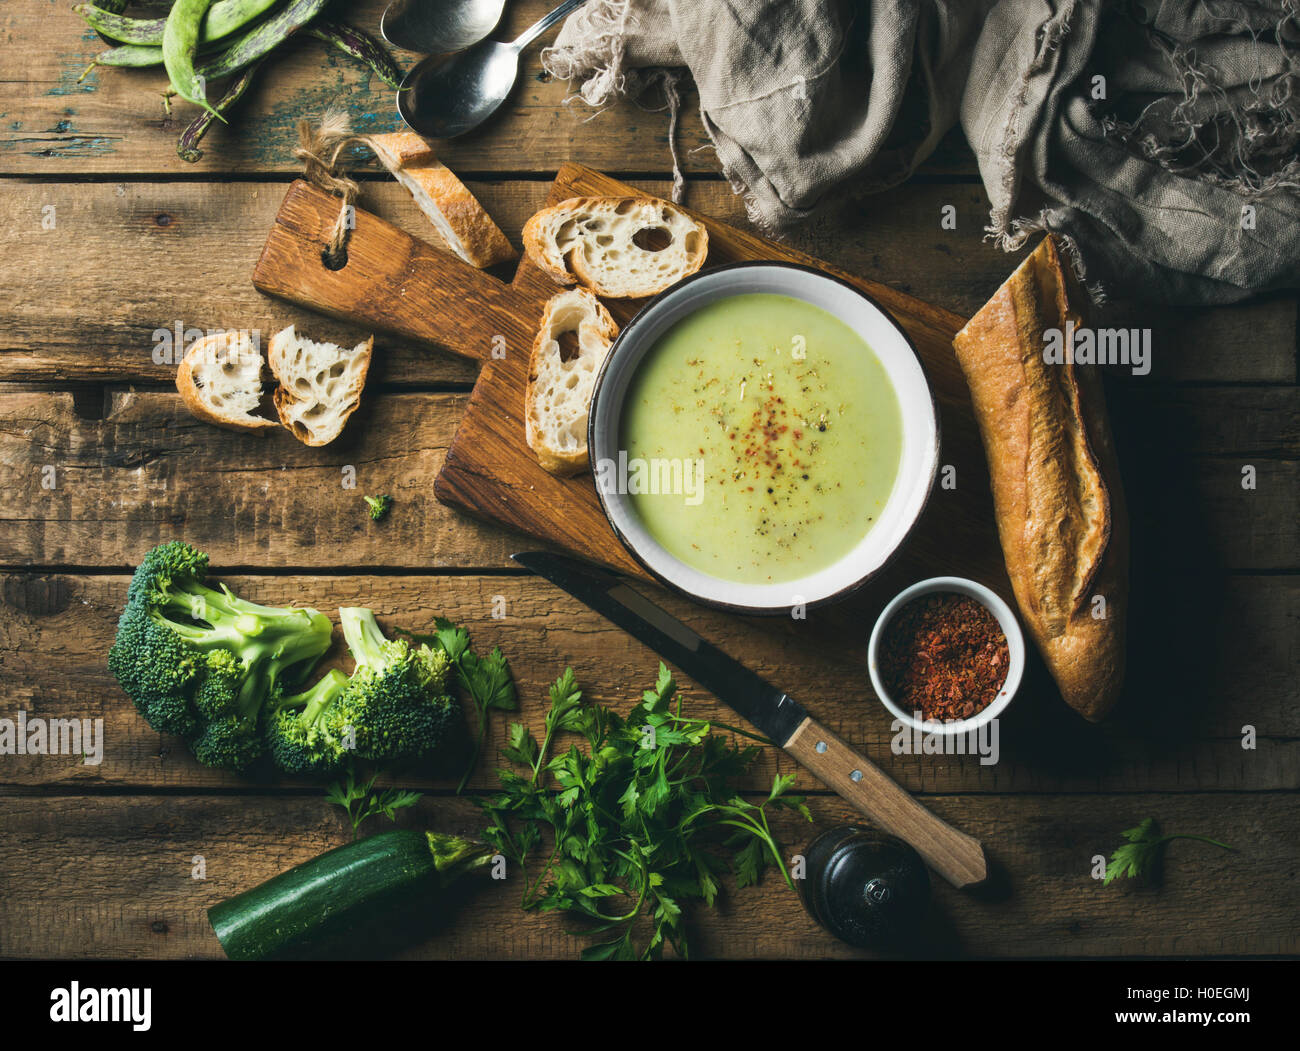 Homemade pea, broccoli, zucchini cream soup in white bowl with fresh baguette on wooden board over rustic background, - Stock Image